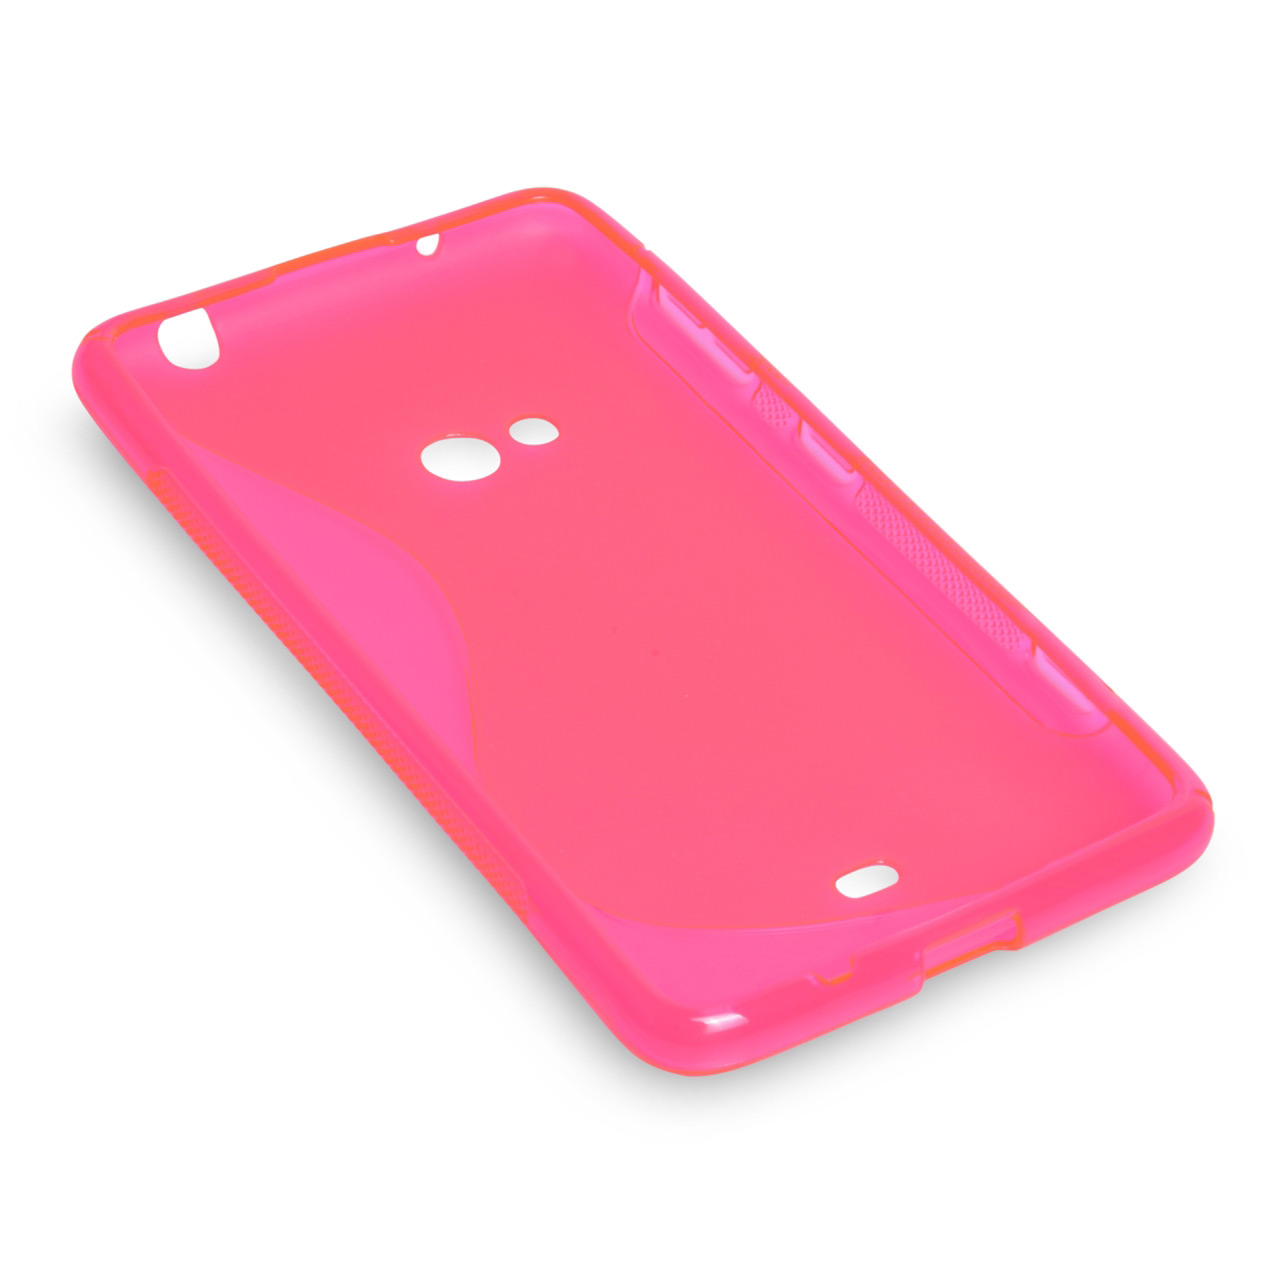 YouSave Accessories Nokia Lumia 625 S Line Gel Case - Pink